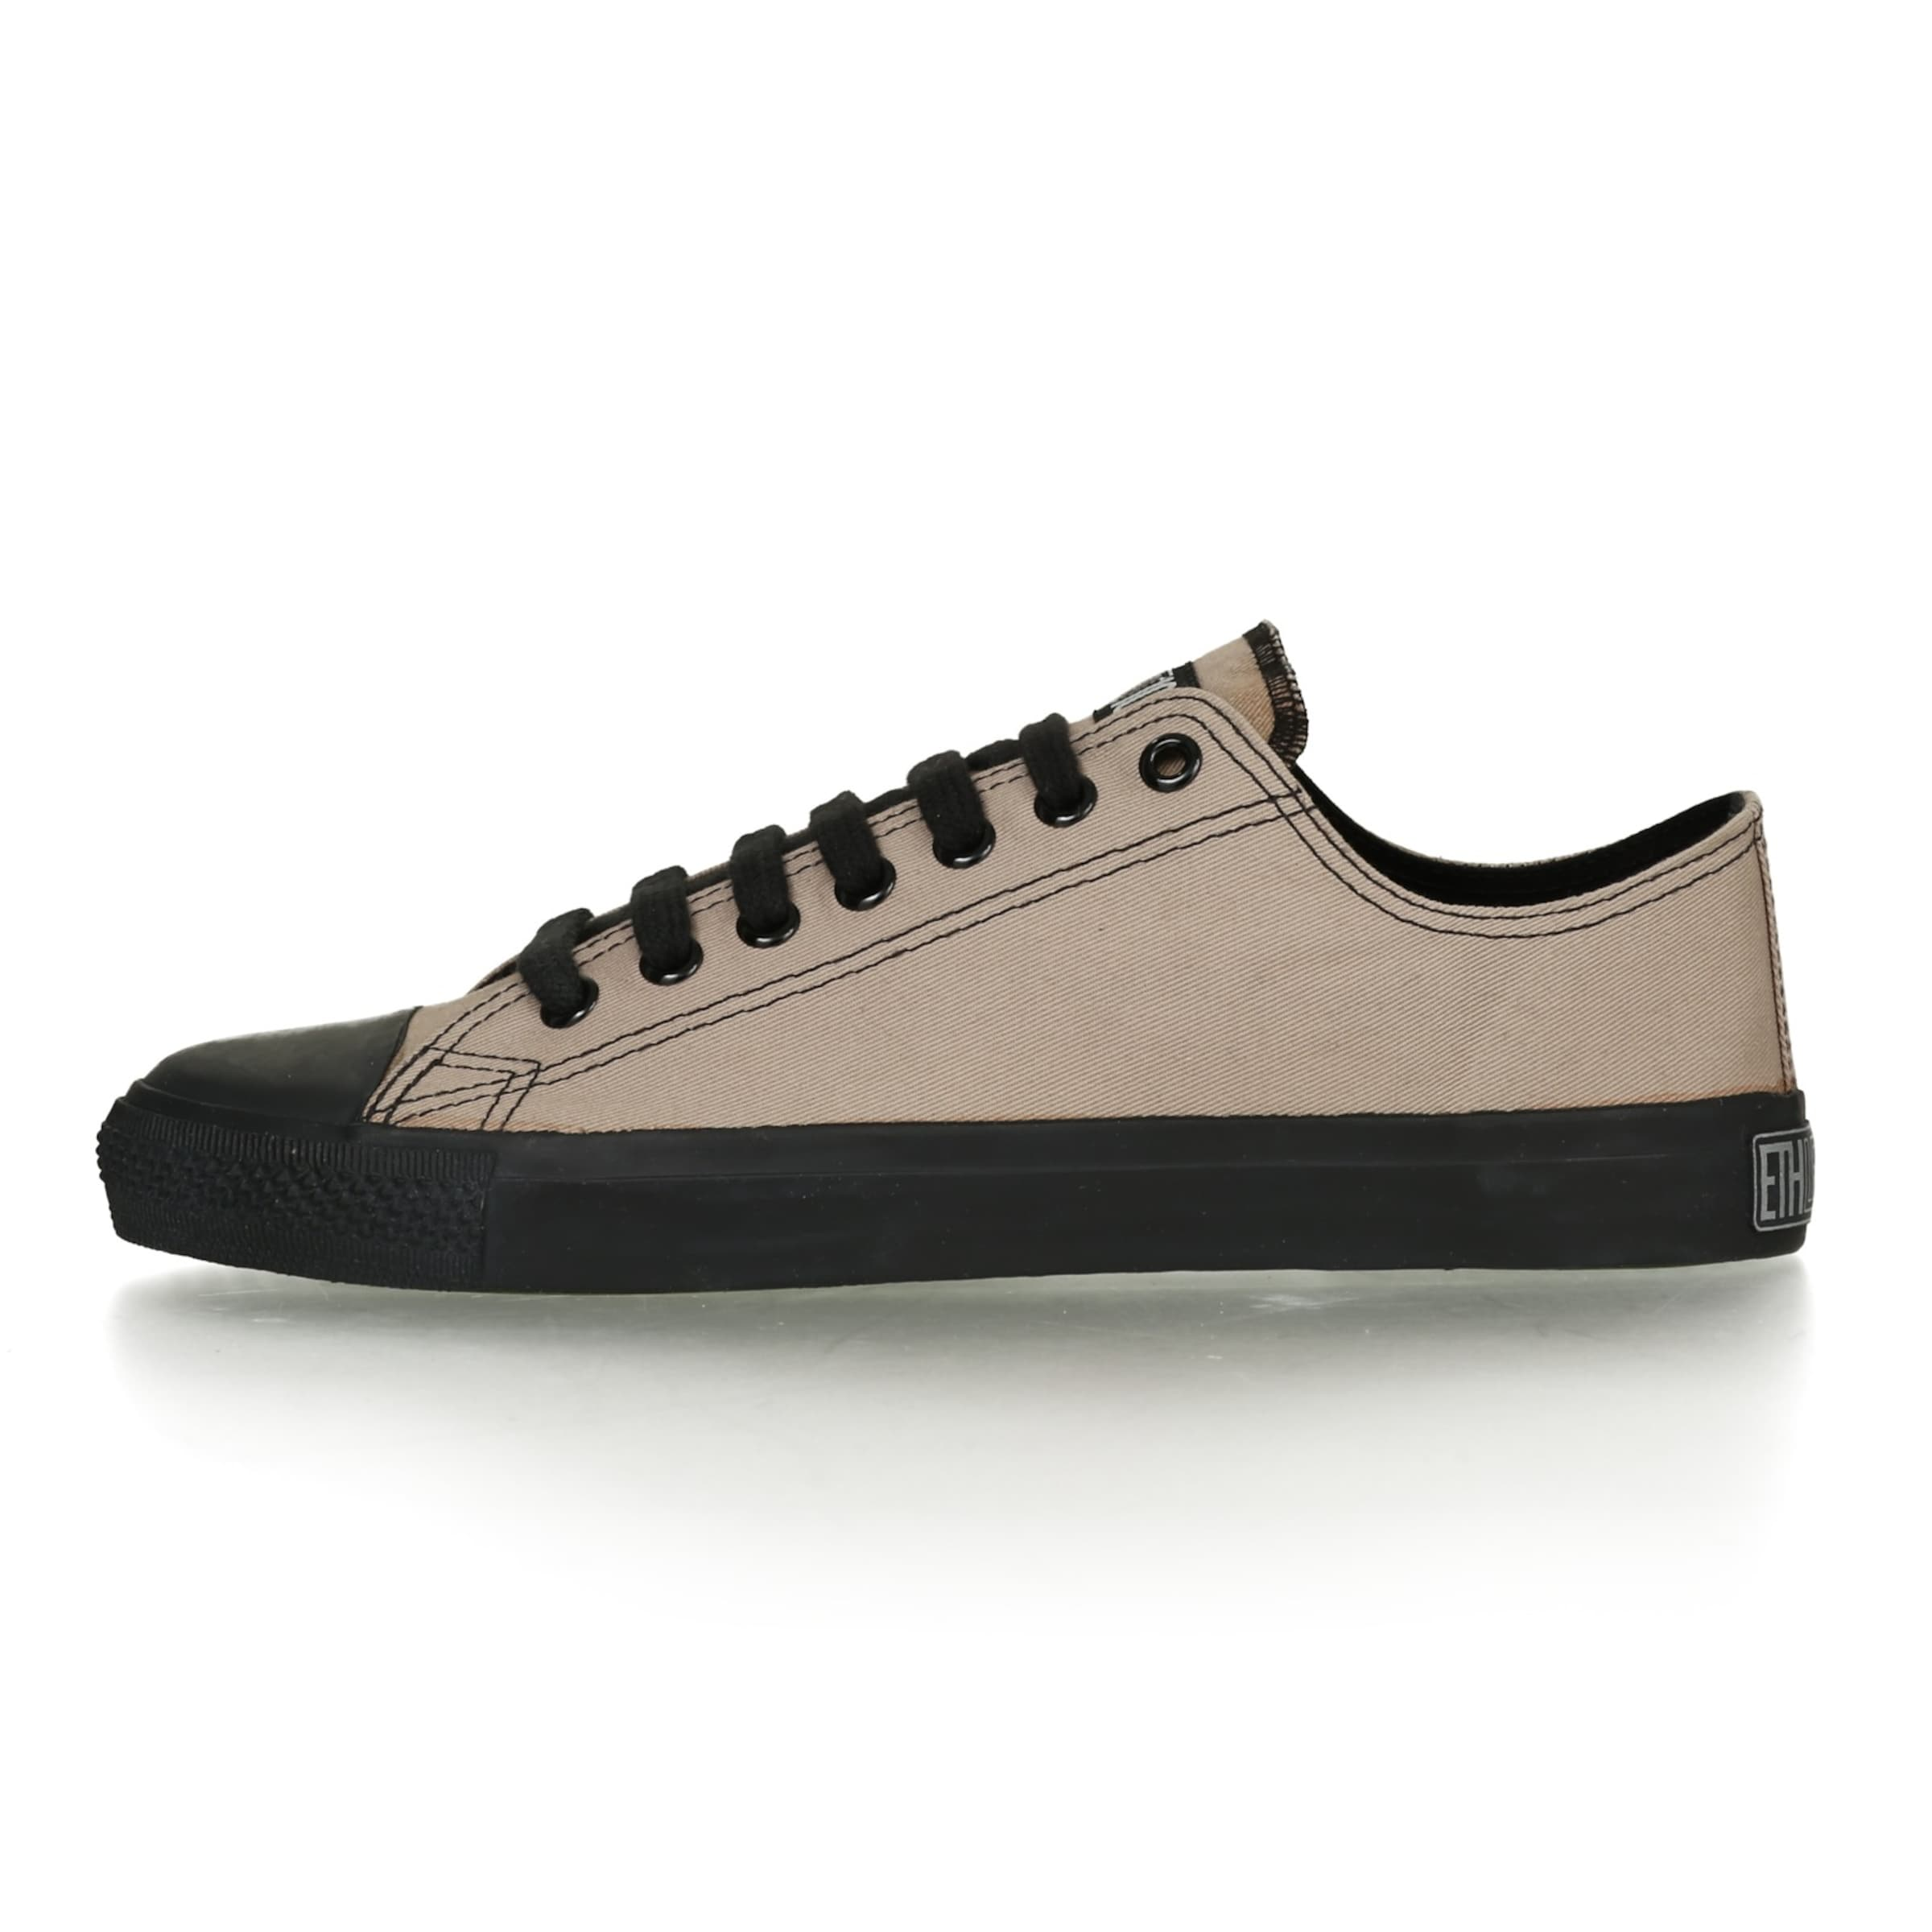 In HellbraunSchwarz Ethletic Sneaker 'fair Trainer Classic' LUpqGjSzVM